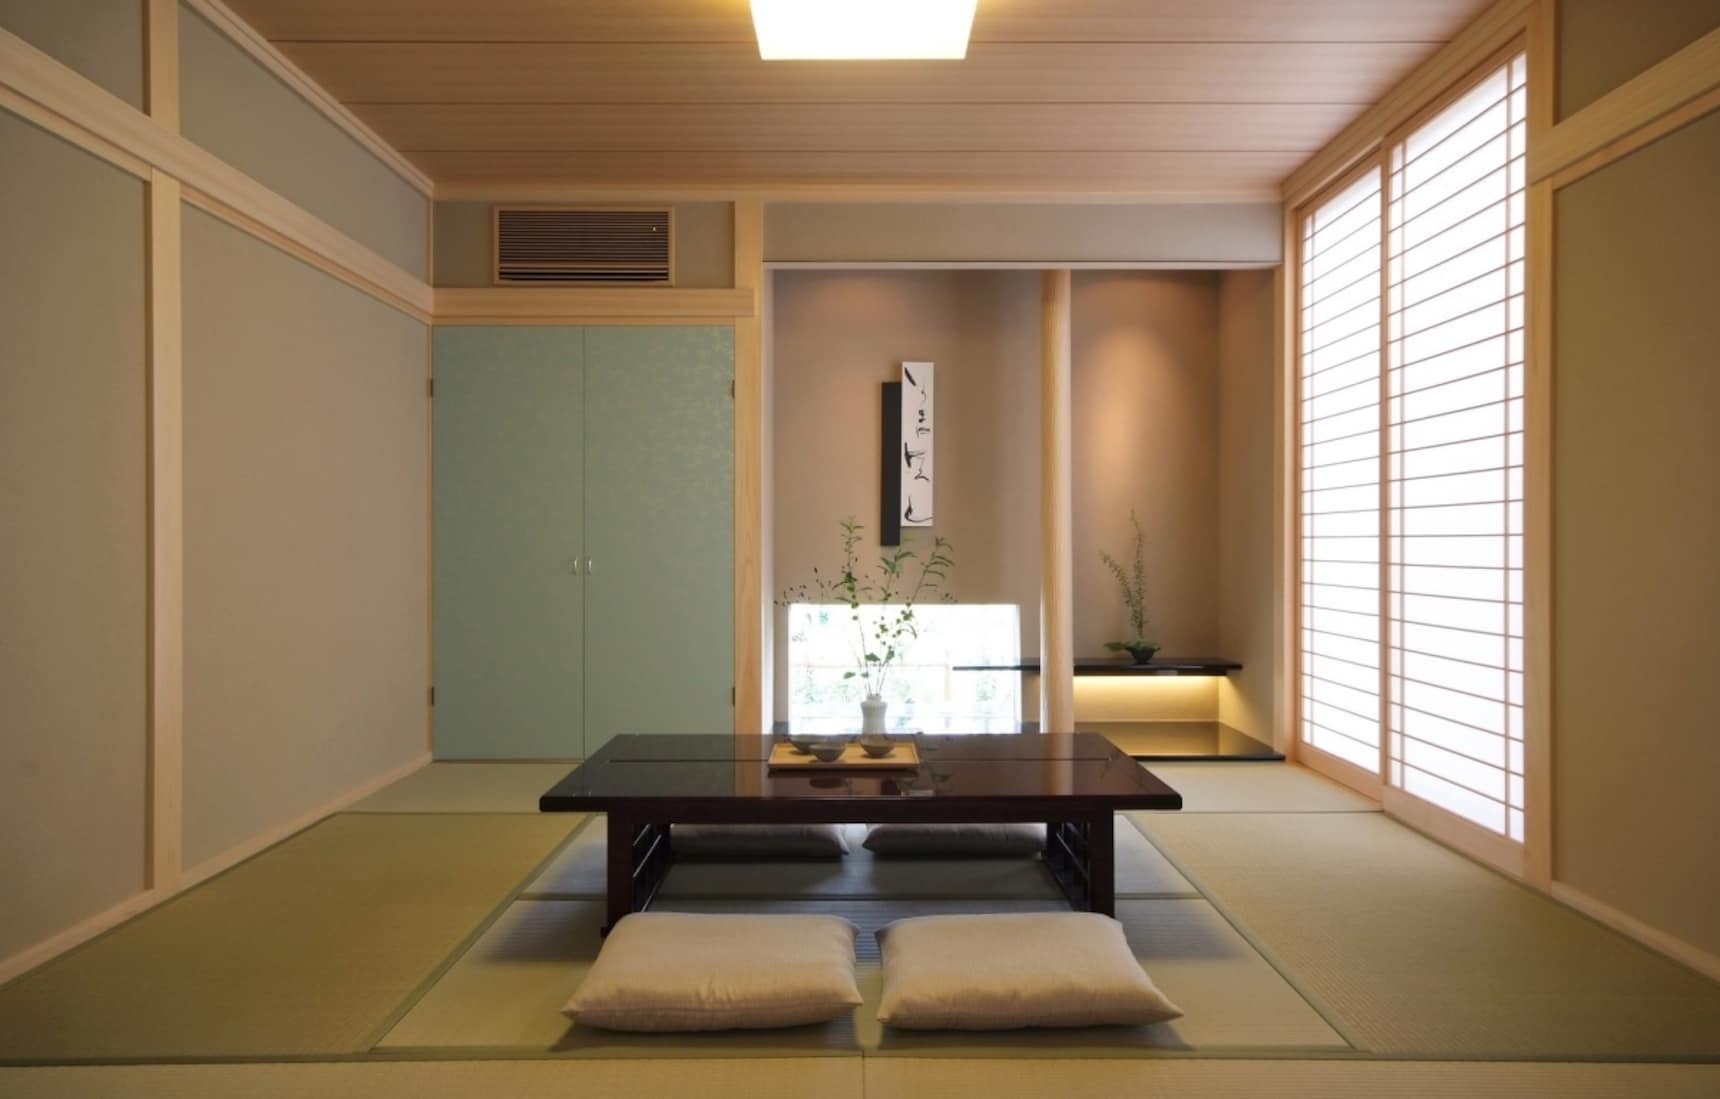 Glean the secrets of japanese interior design all about for Living room ideas japan